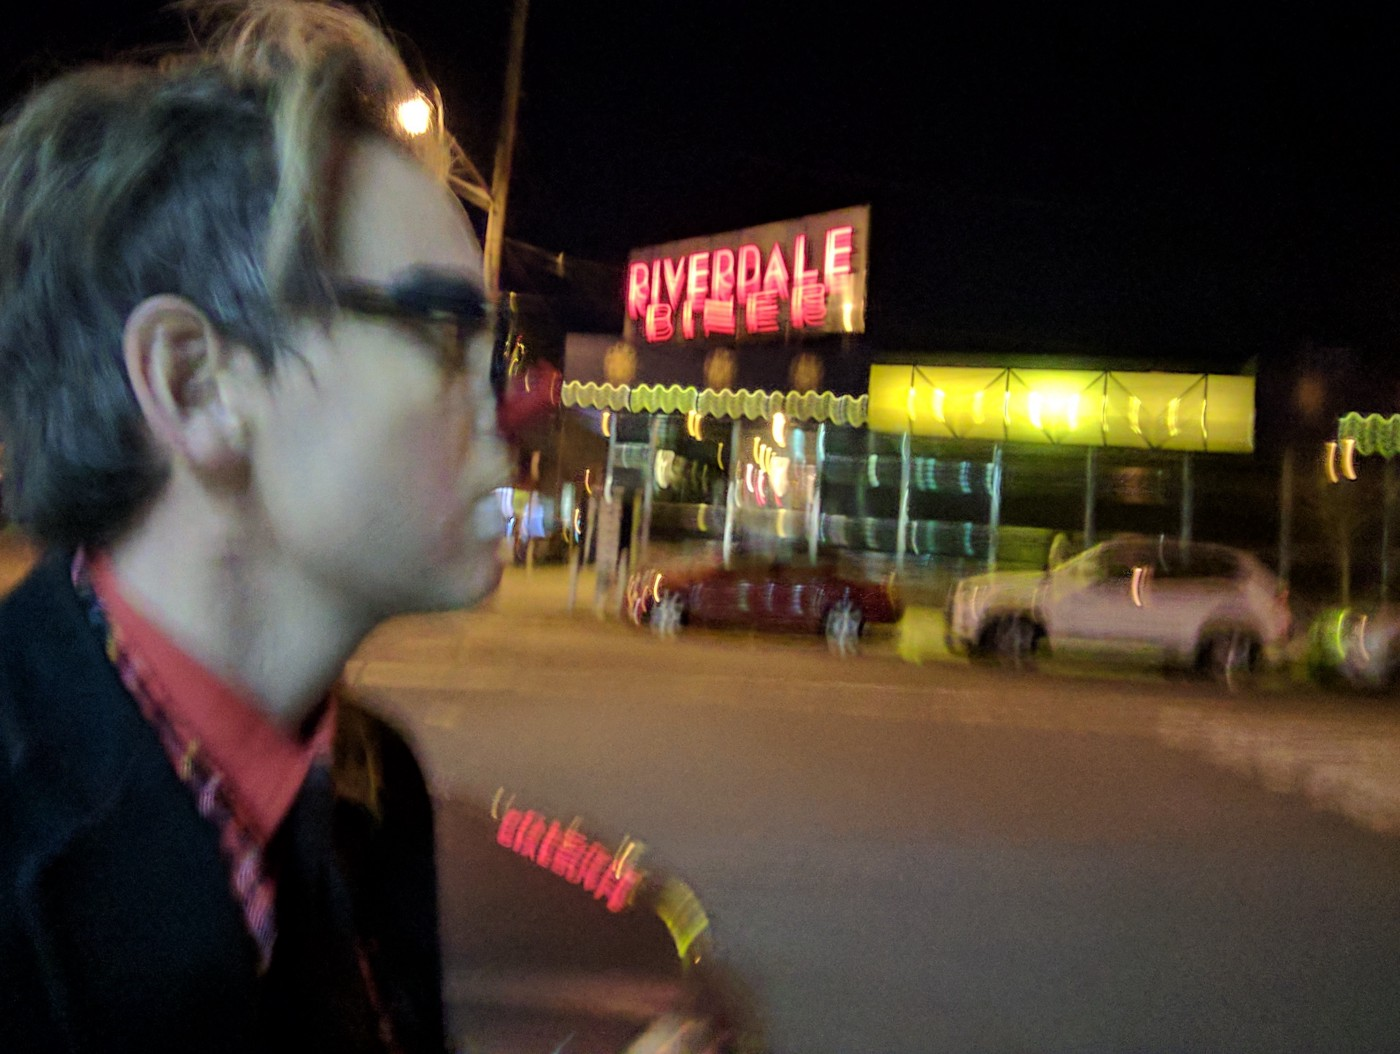 Night time in the Bronx, slightly blurred image of a man wearing a petite red nose and black Buddy Holly glasses in the foreground as he schleps past the blurred neon lights of the Riverdale Diner. He's a medical clown on the way to a bat mitvah.